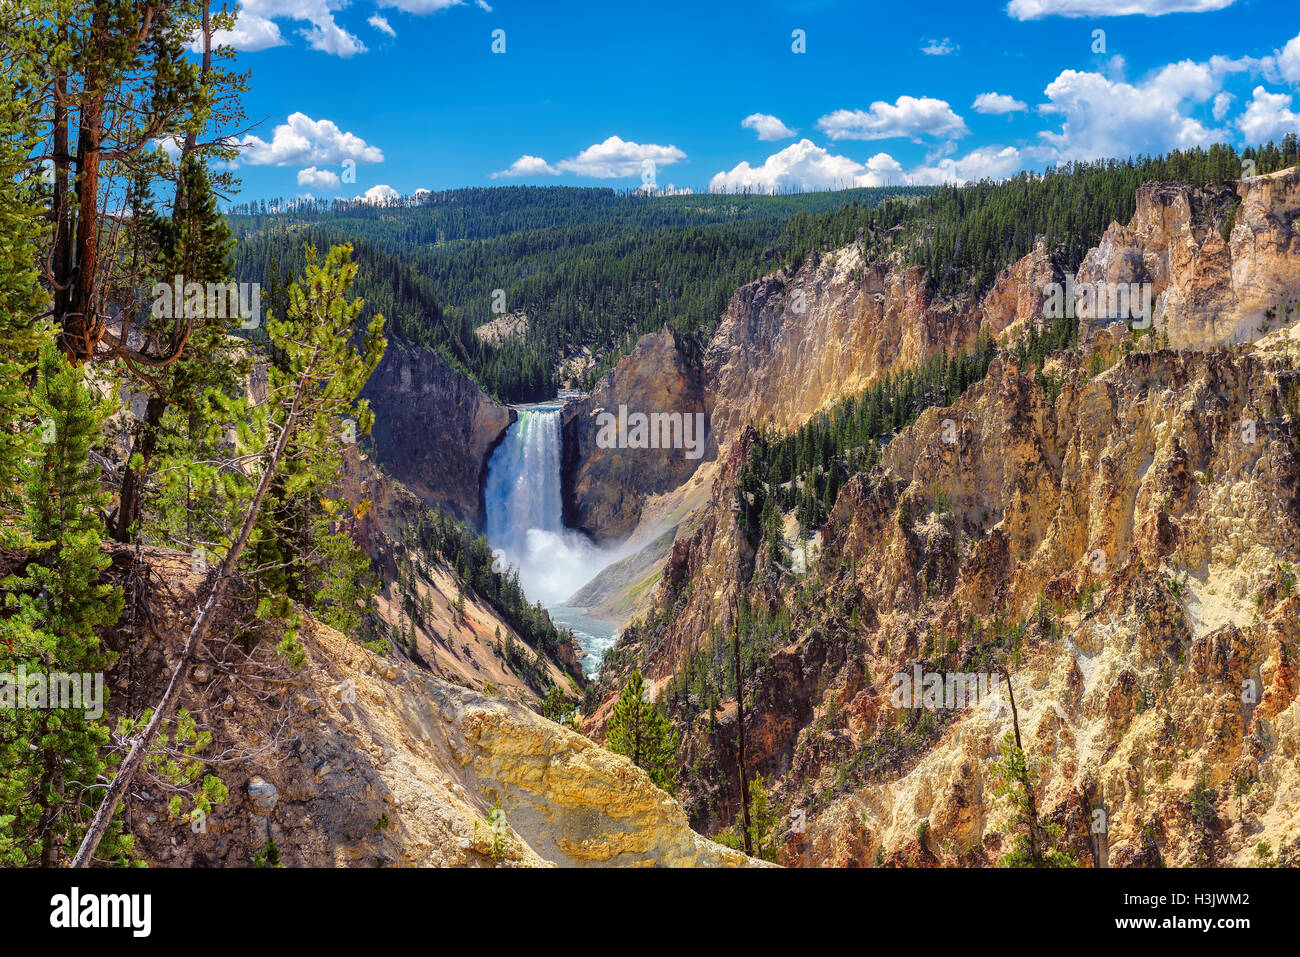 Yellowstone National Park, Lower Falls, Wyoming - United States of America - Stock Image